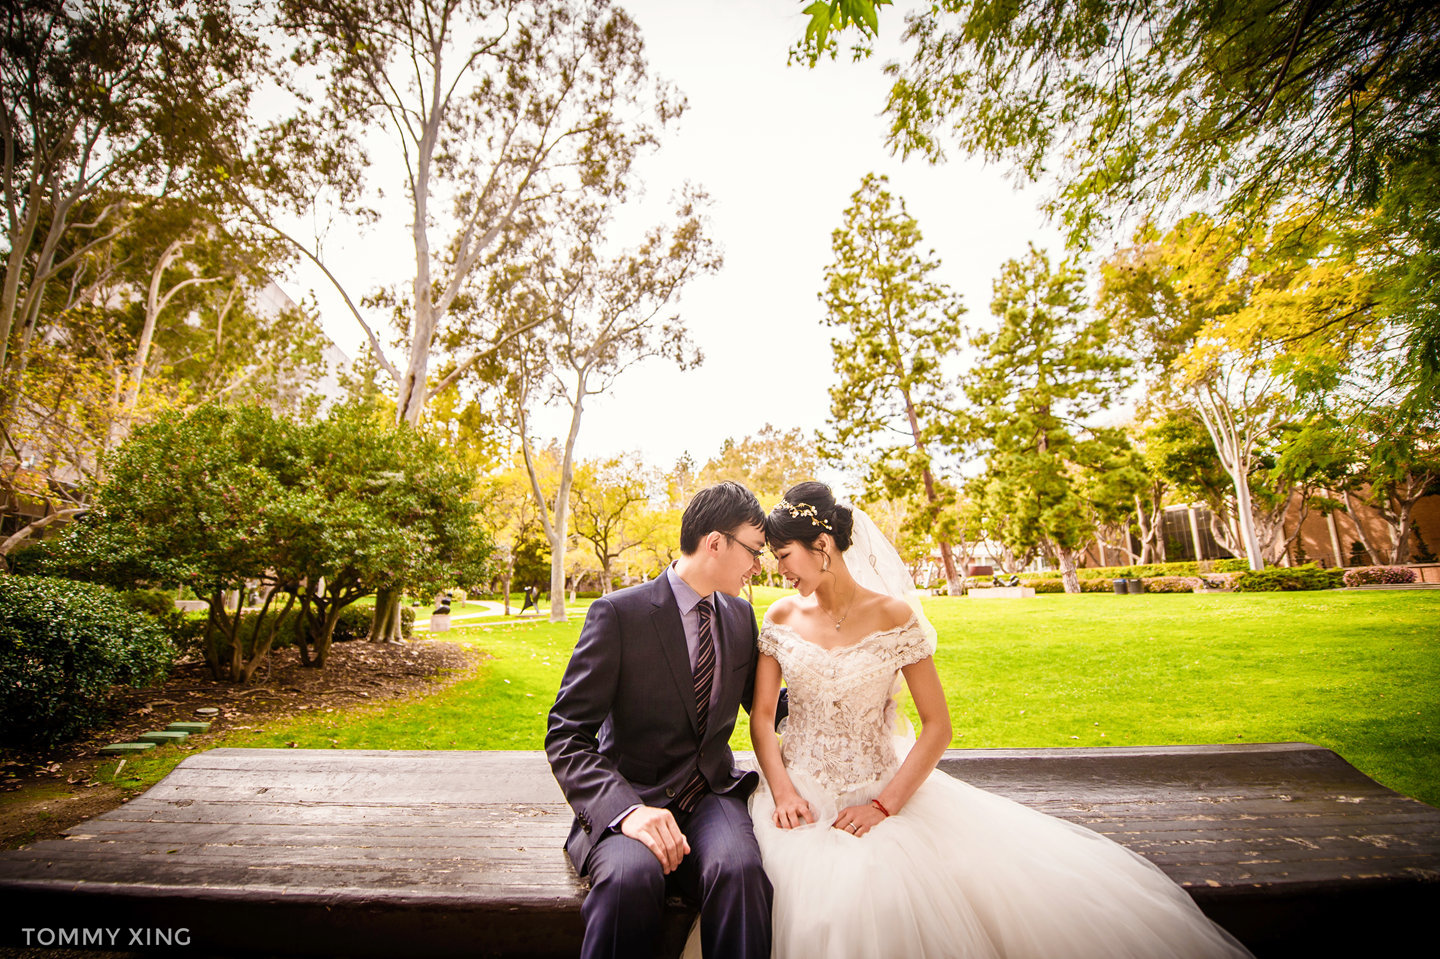 洛杉矶旧金山婚礼婚纱照摄影师 Tommy Xing Los Angeles wedding photographer 02.jpg